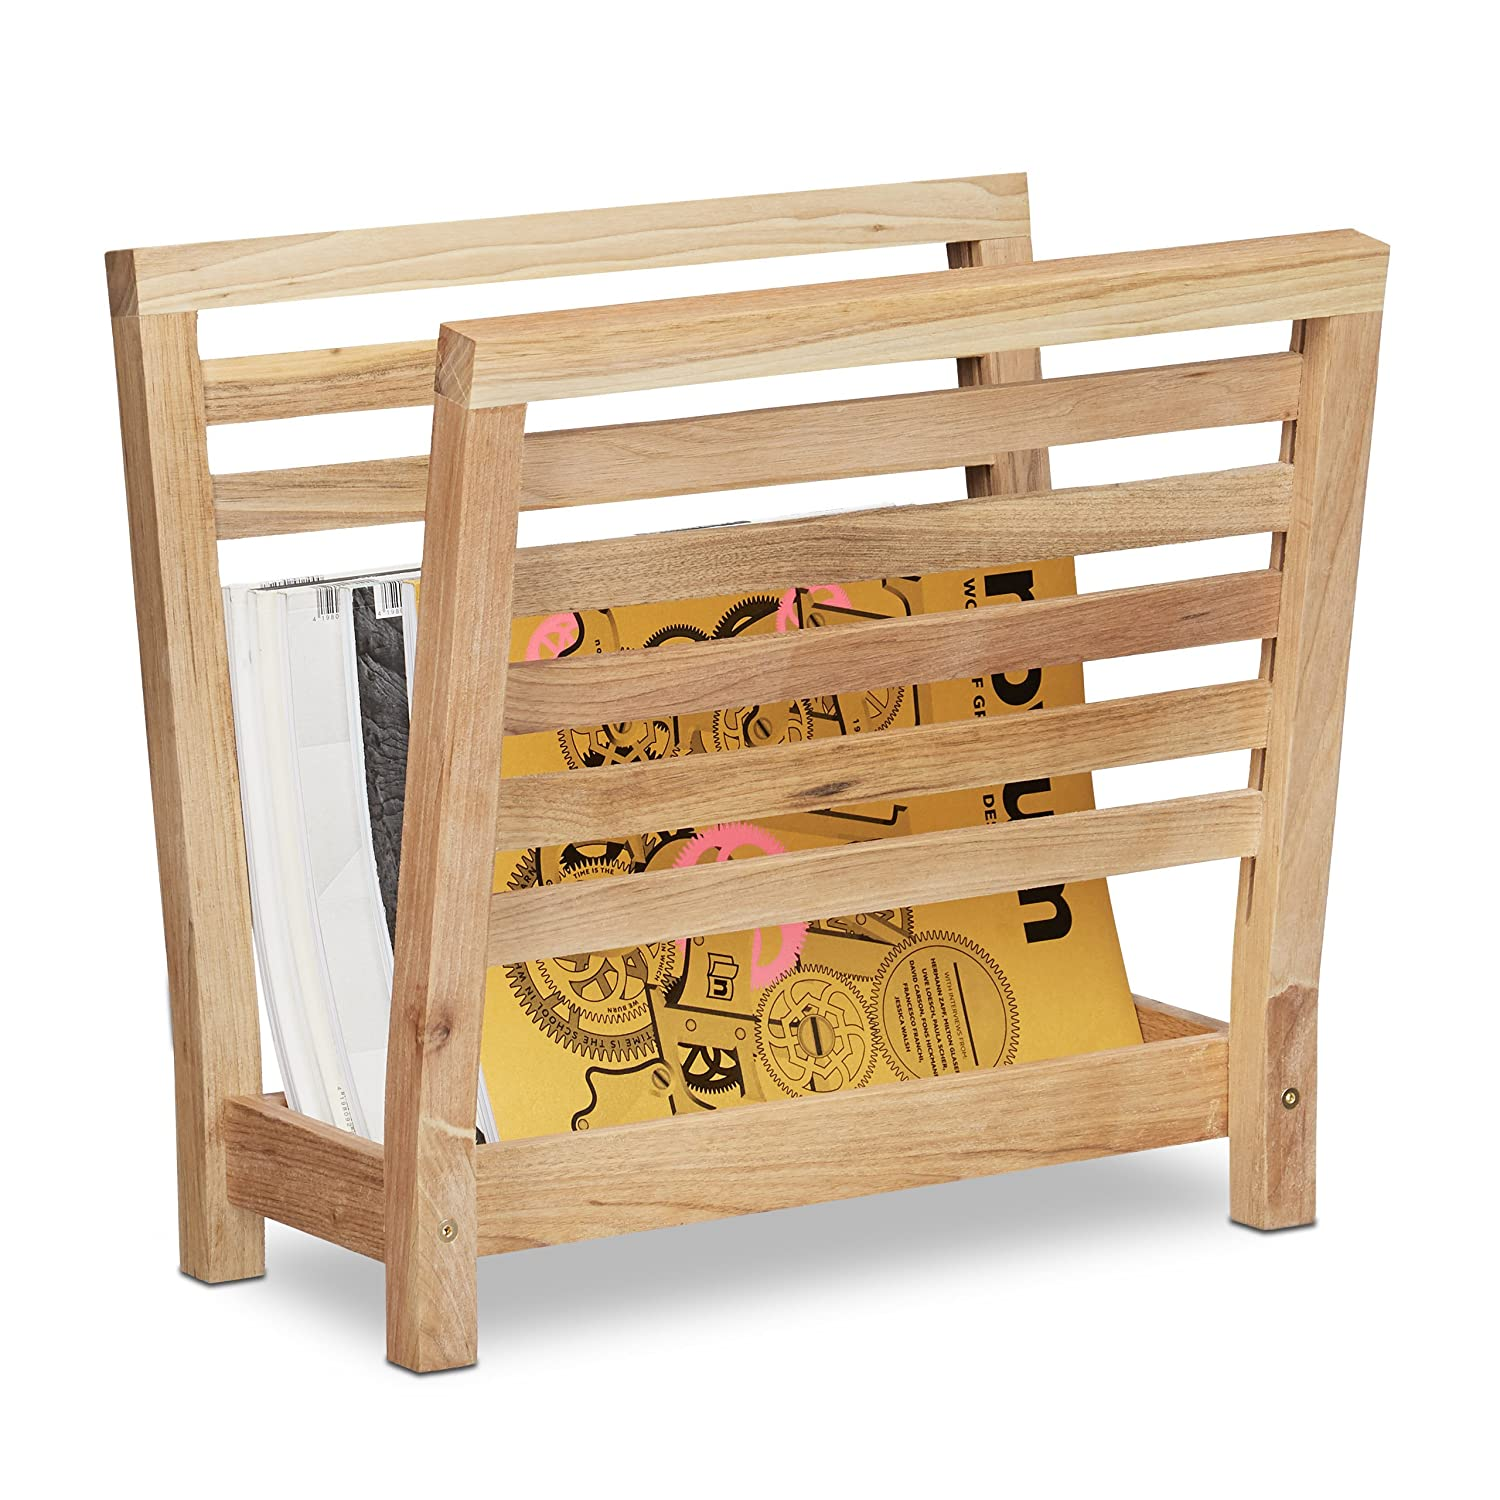 Relaxdays Walnut Newspaper Stand, Shelf, Magazine Holder, Catalogue Storage, HxWxD: 38.5 x 26.5 x 40 cm, Wood, Natural, Brown, 40 x 26.5 x 38.5 cm 10020656